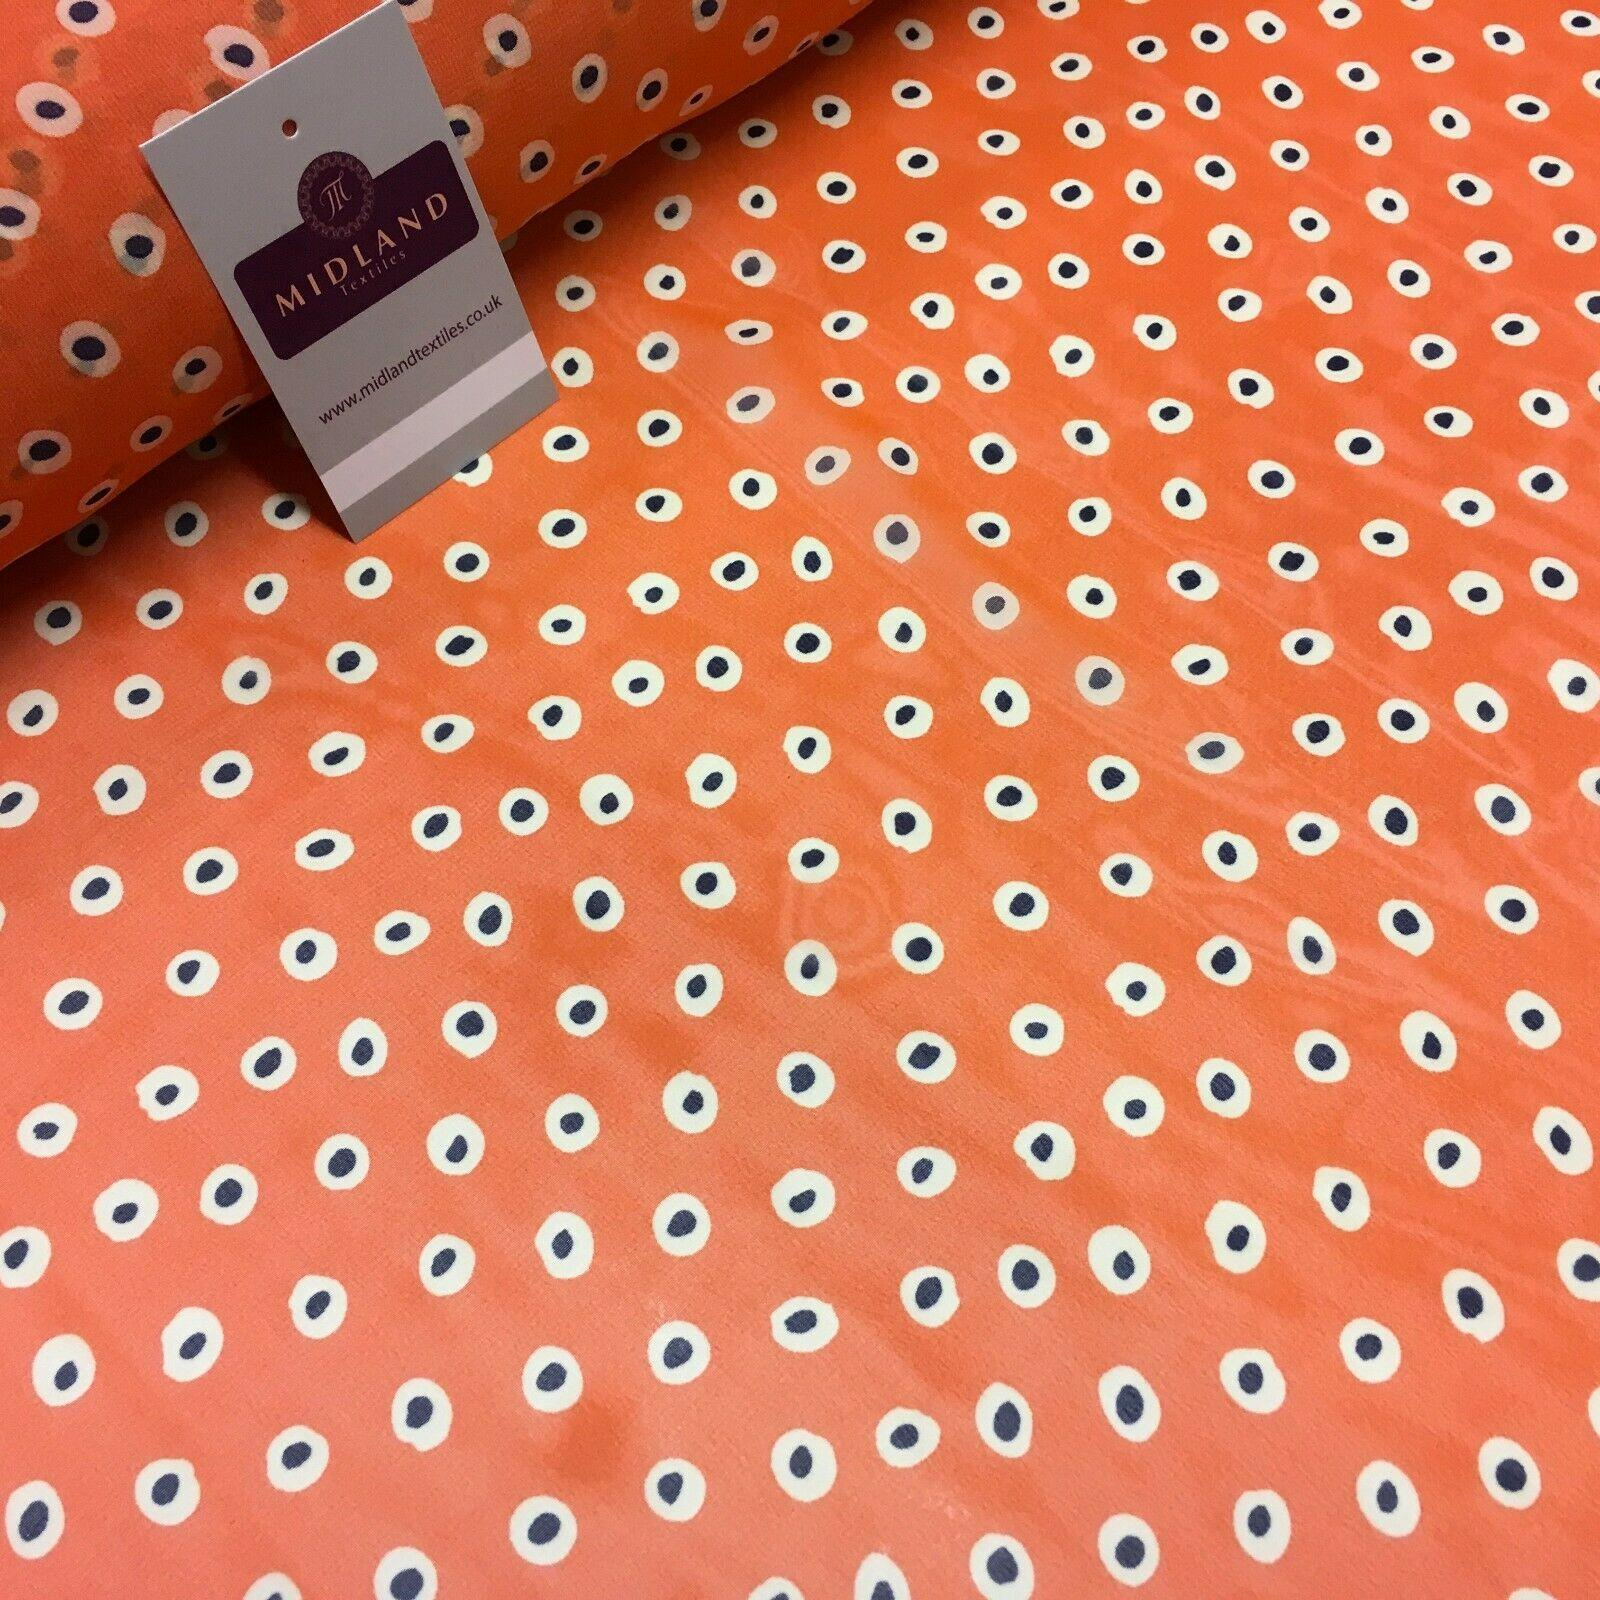 Orange Spotted printed Crepe chiffon Dress Fabric 150 cm Wide MK1190-4 Mtex